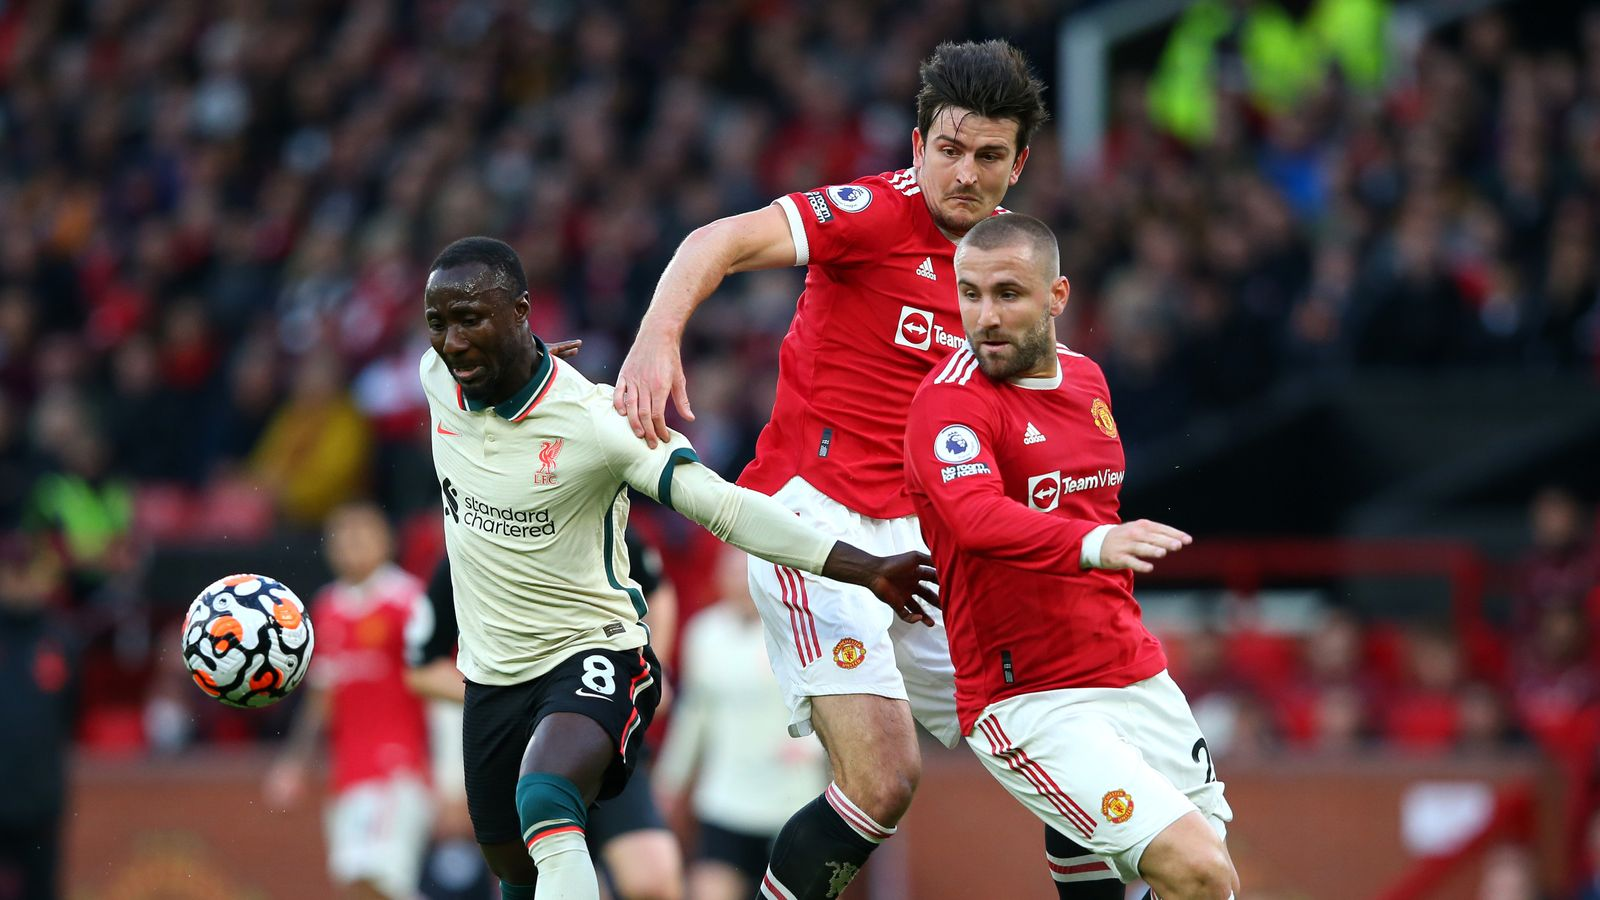 Manchester United 0-5 Liverpool: Player ratings as Naby Keita and Mohamed Salah star amid gifts from Harry Maguire, Luke Shaw and co